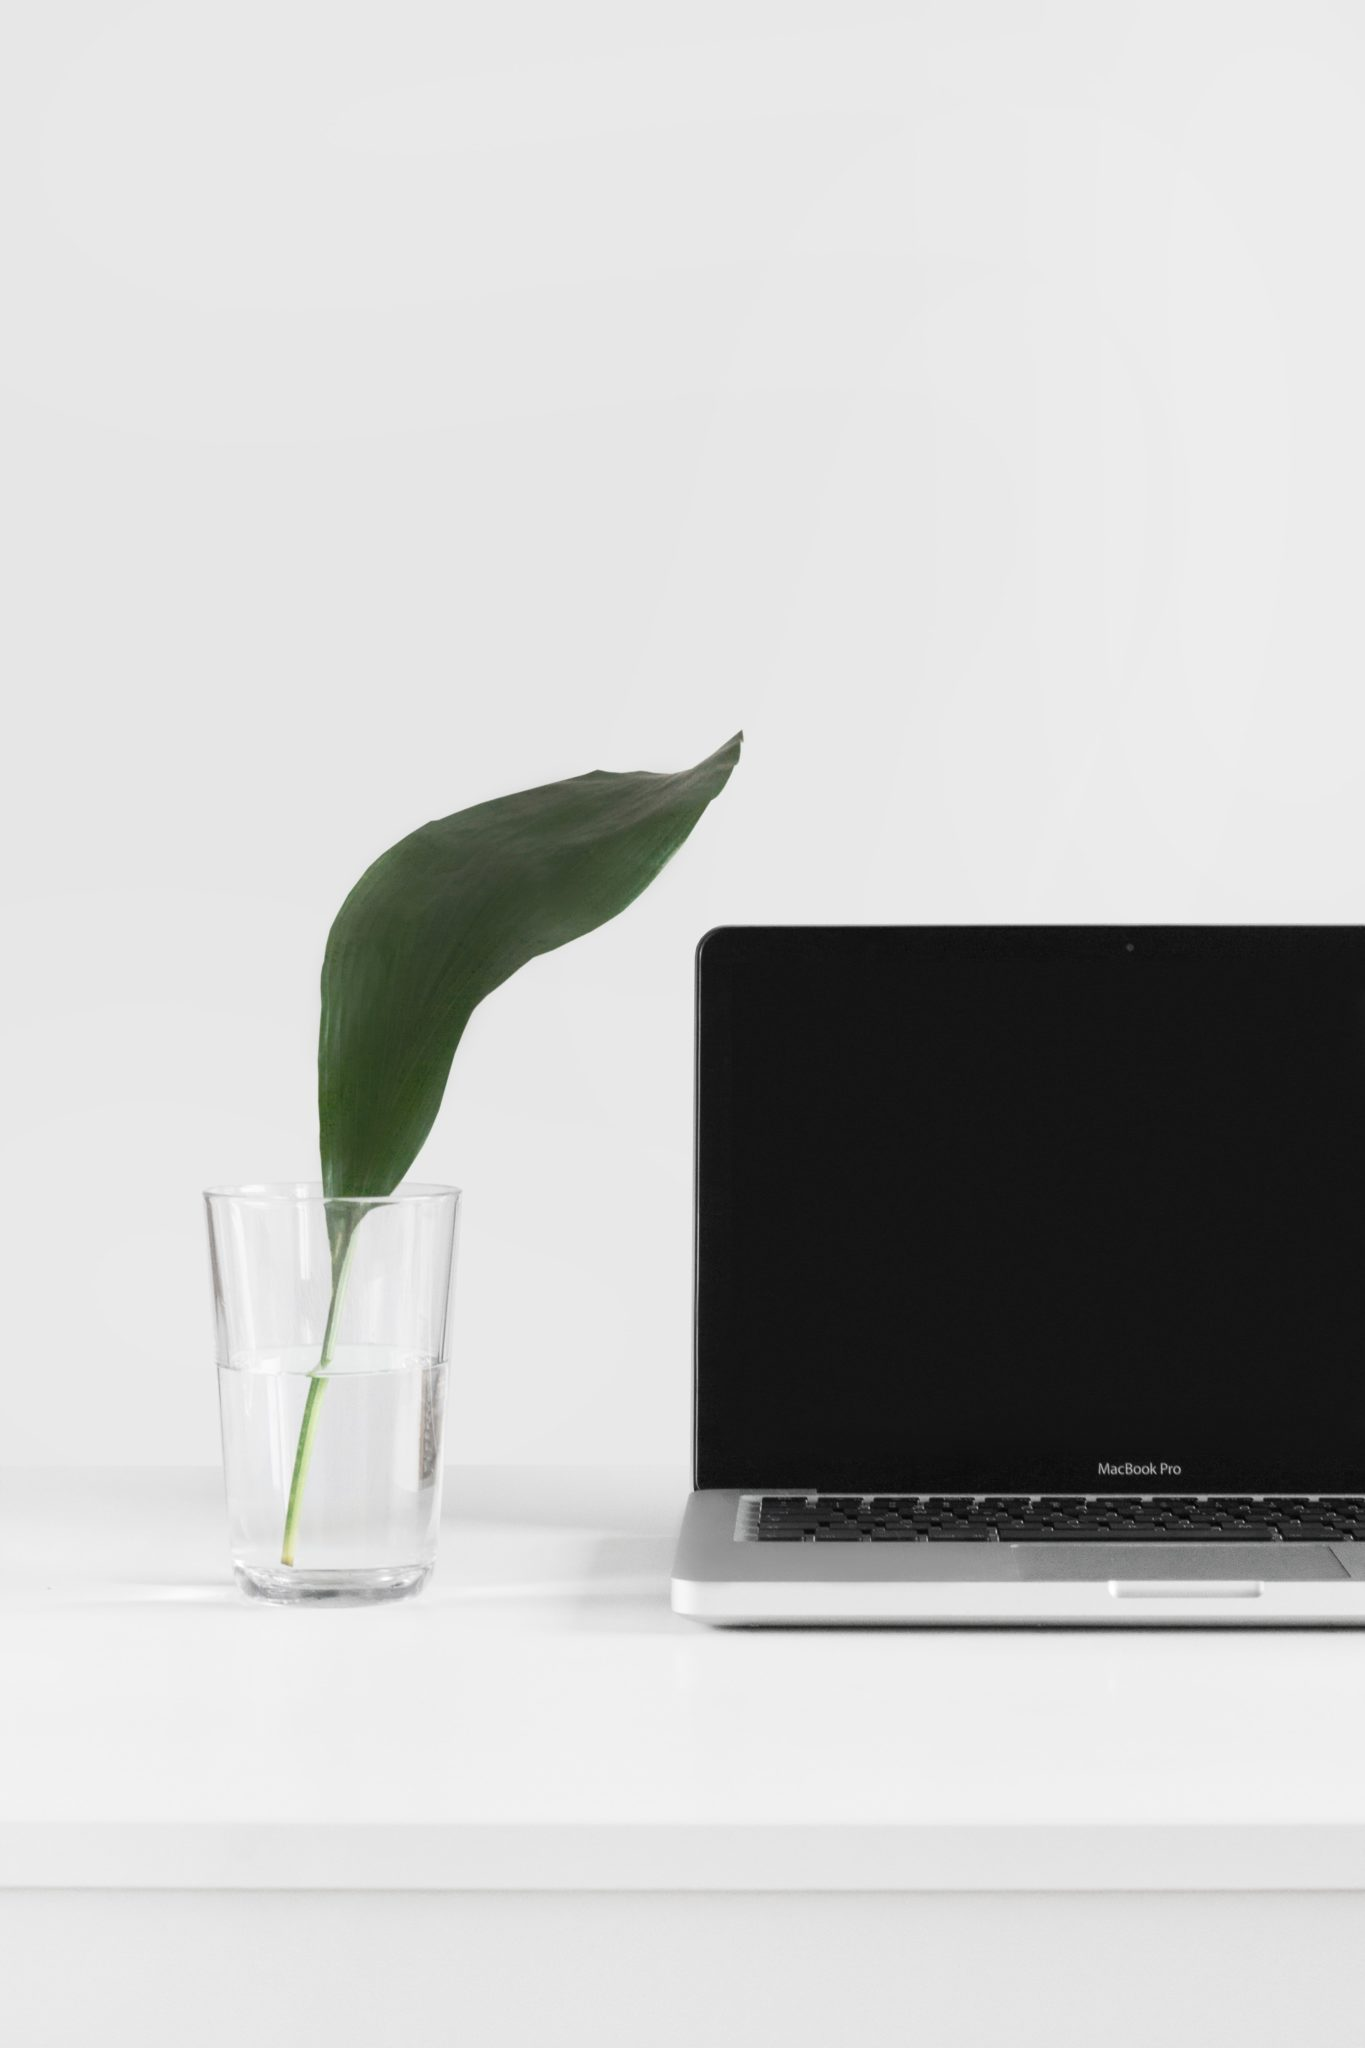 image of a clear glass filled with water and a green leaf next to a laptop on a white desk